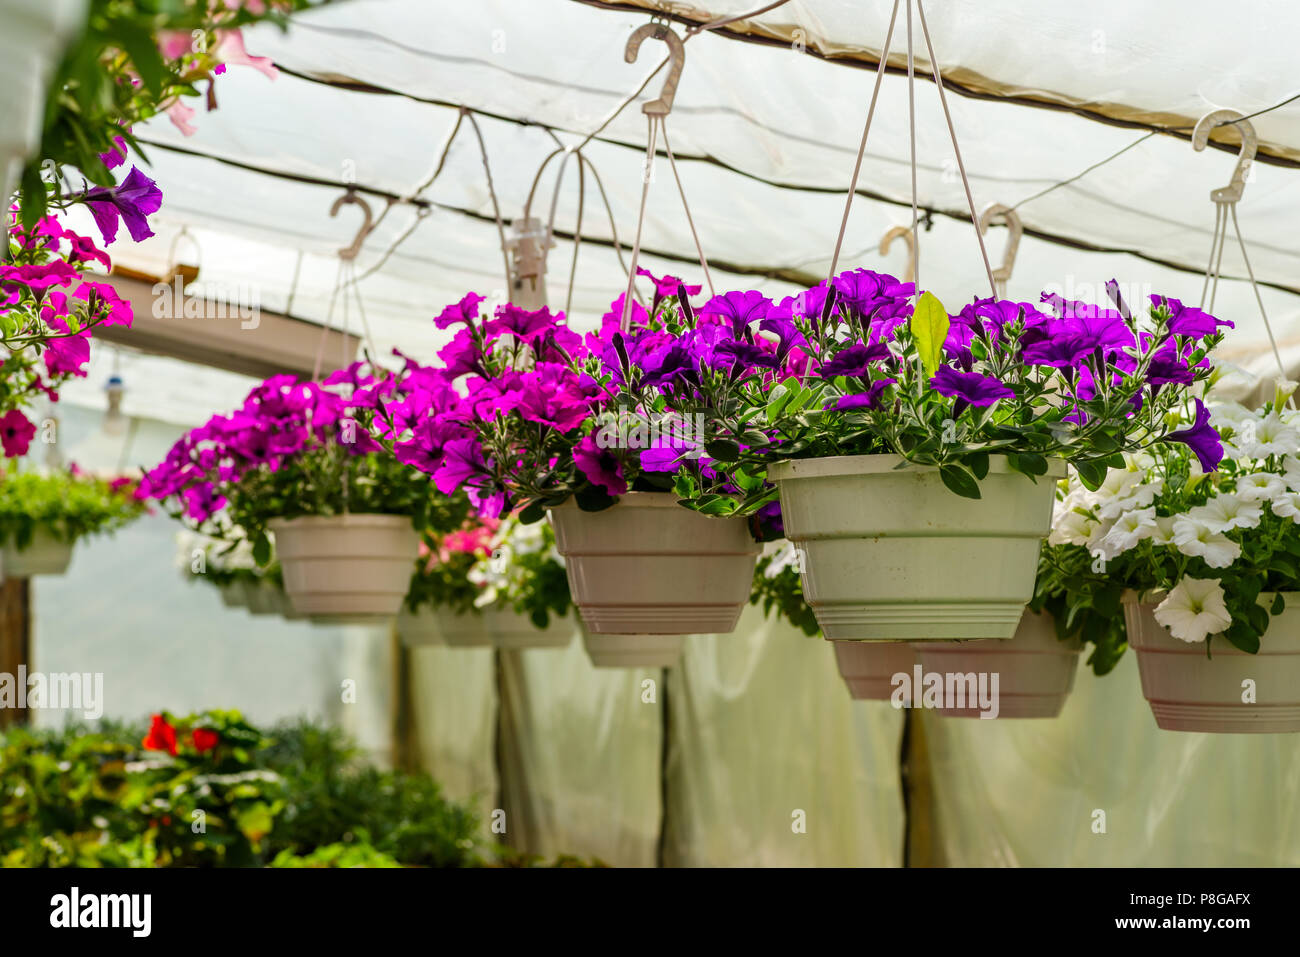 different flowers in the greenhouse - Stock Image